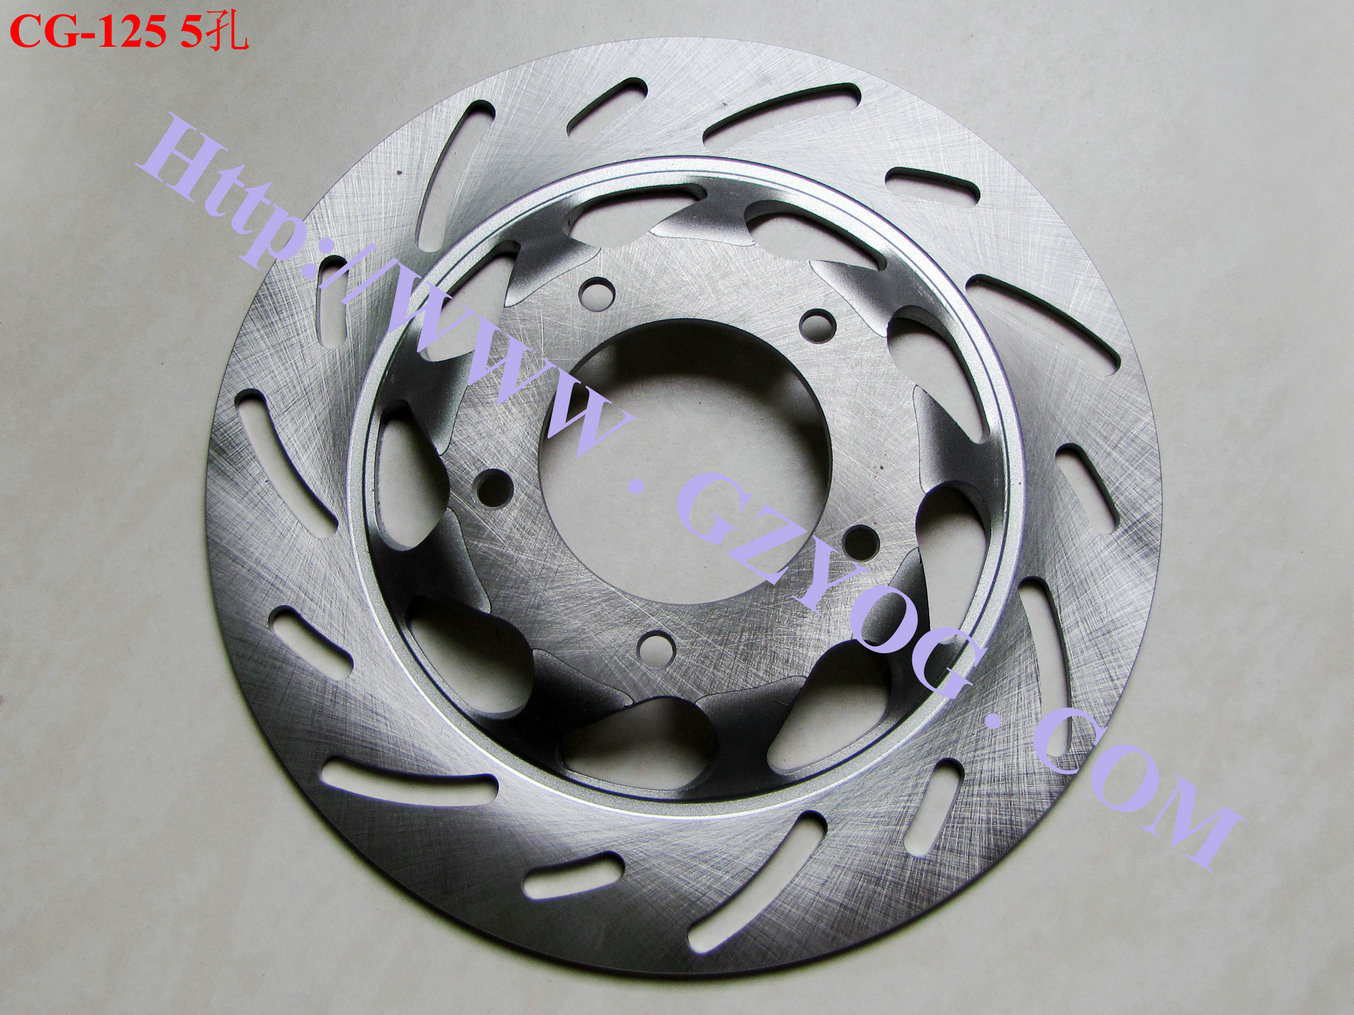 Yog Motorcycle Spare Parts Brake Disc Plate Honda YAMAHA Suzuki Bajaj Tvs Keeway Shineray Biz Italika off Road Akt Qingqi Xy Haojin Pad pictures & photos